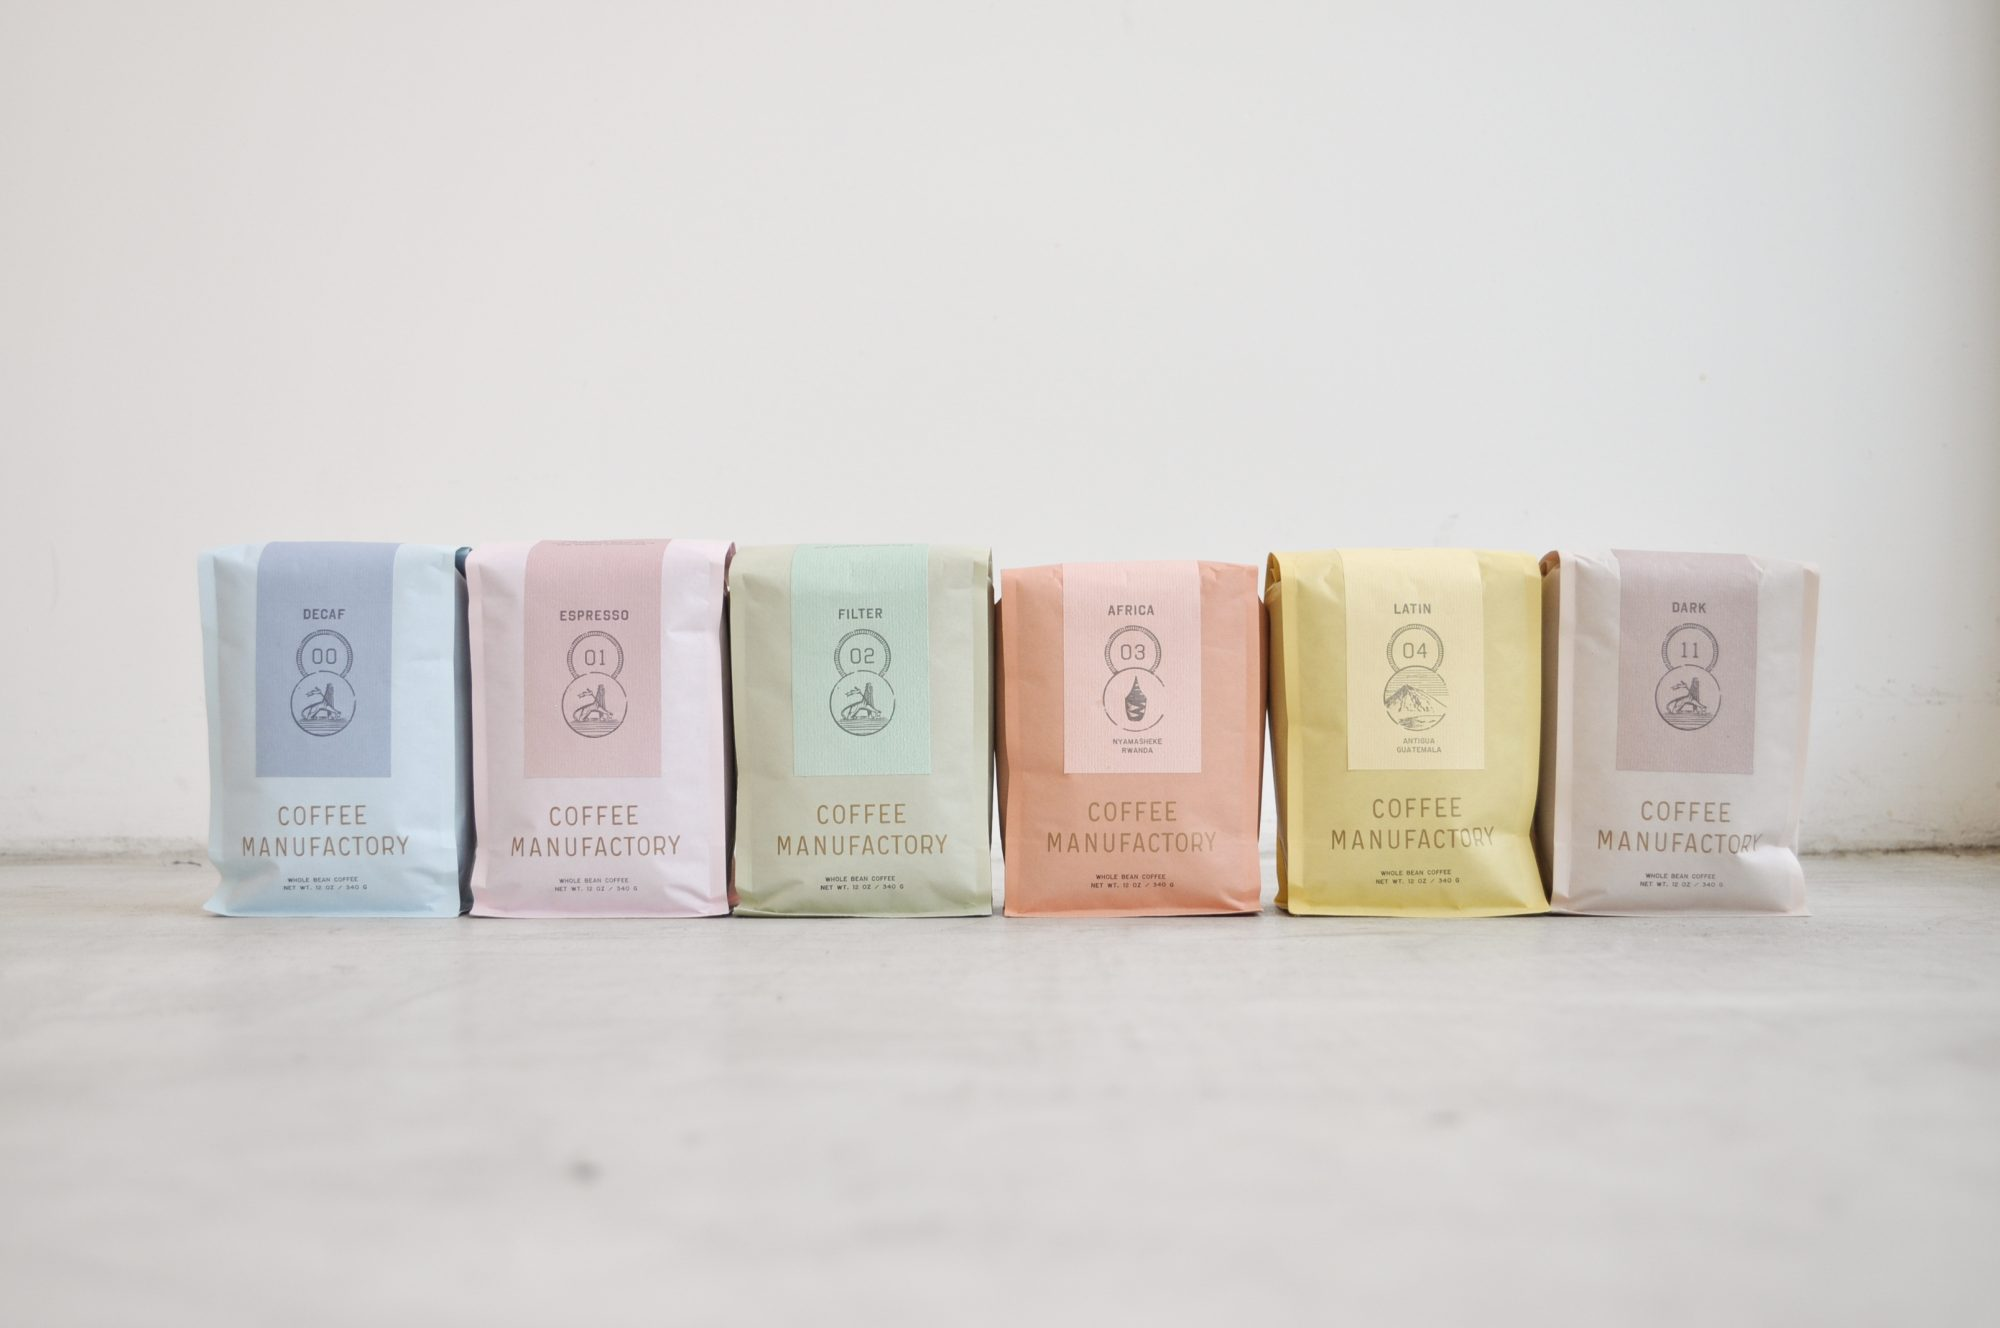 Tartine Coffee Manufactory's compostable packaging